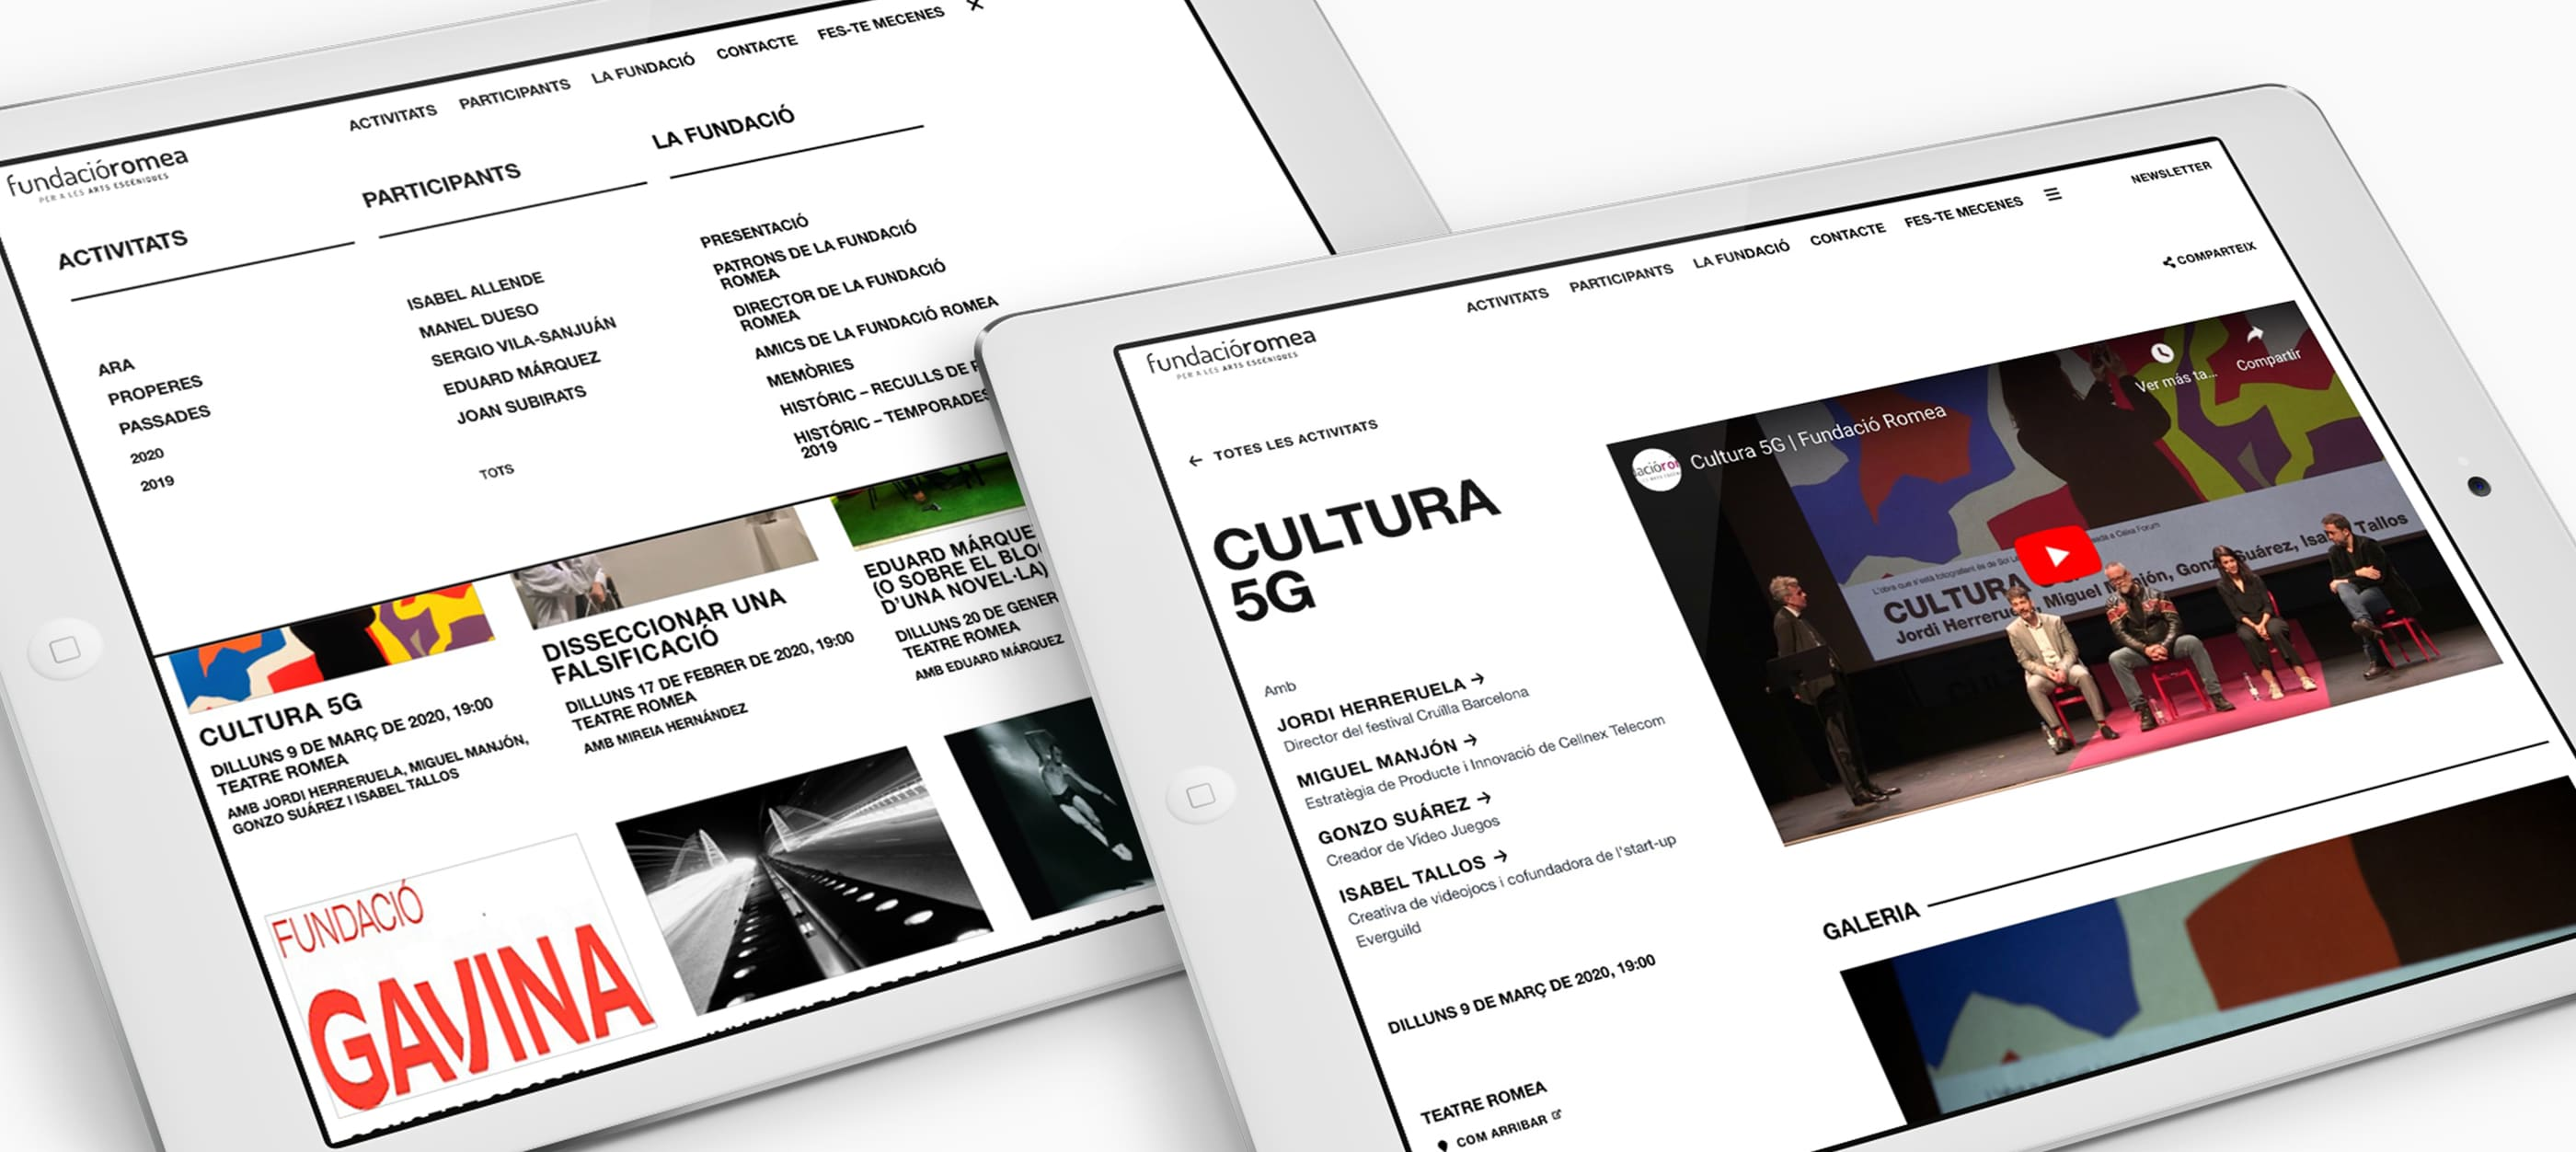 fundacio romea website tablet